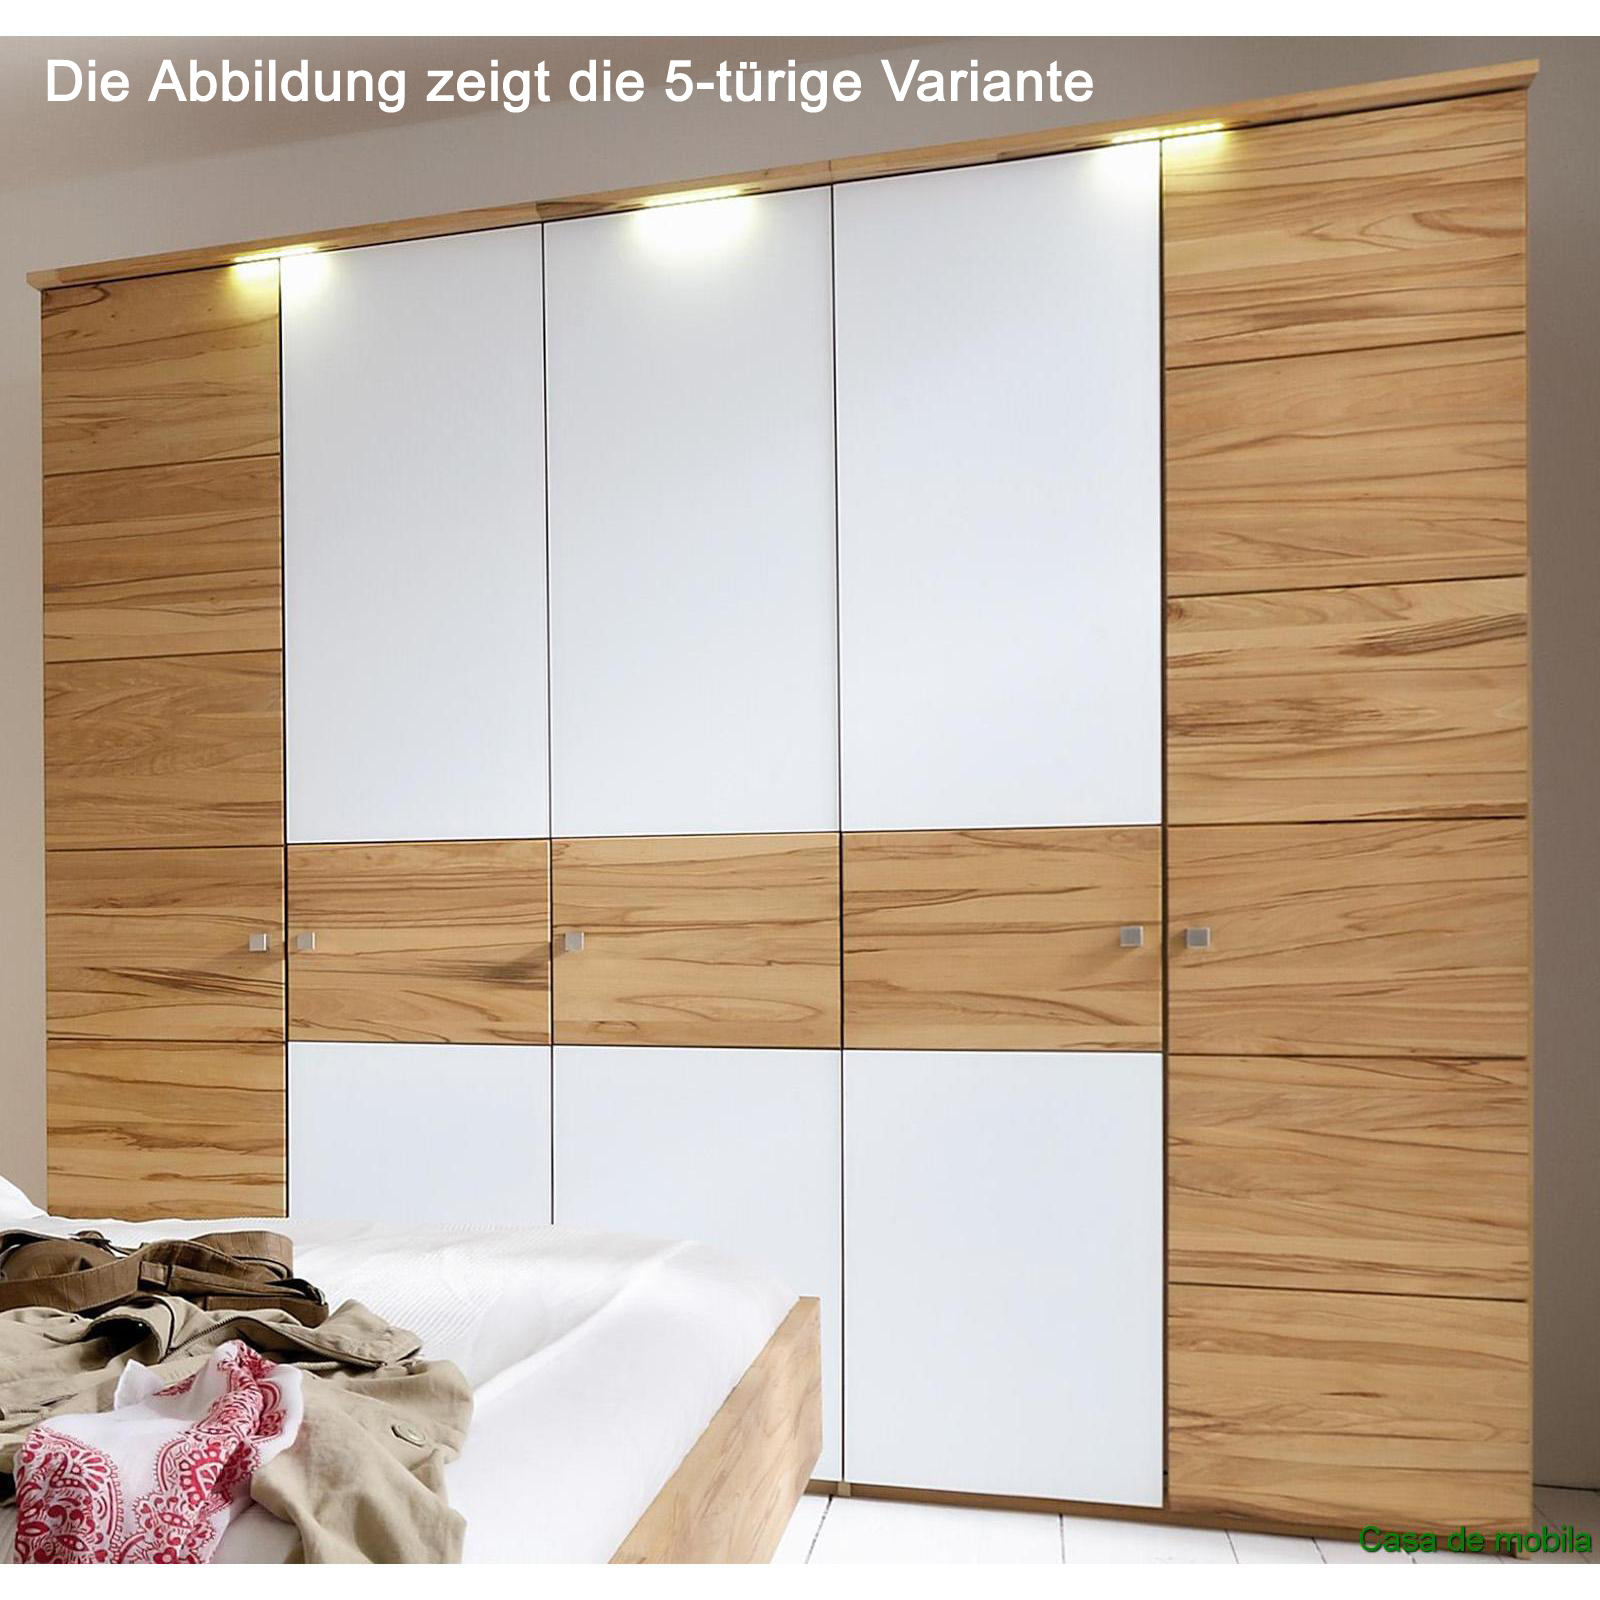 massivholz kleiderschrank kernbuche massiv ge lt mercur f5 2 t rig. Black Bedroom Furniture Sets. Home Design Ideas